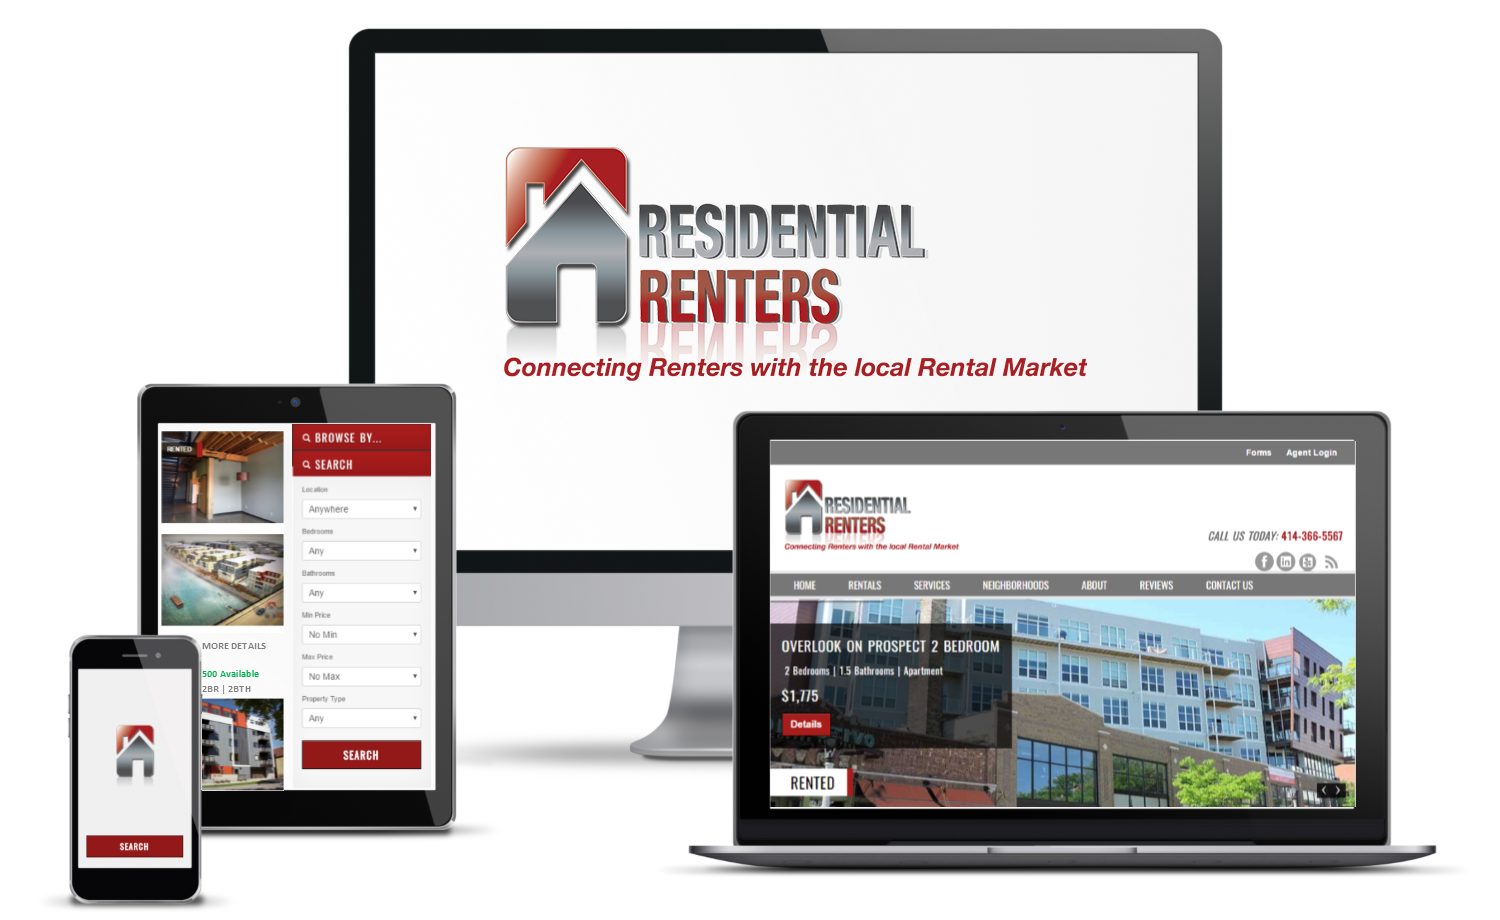 Renters - Property Management Consulting - Residential Renters